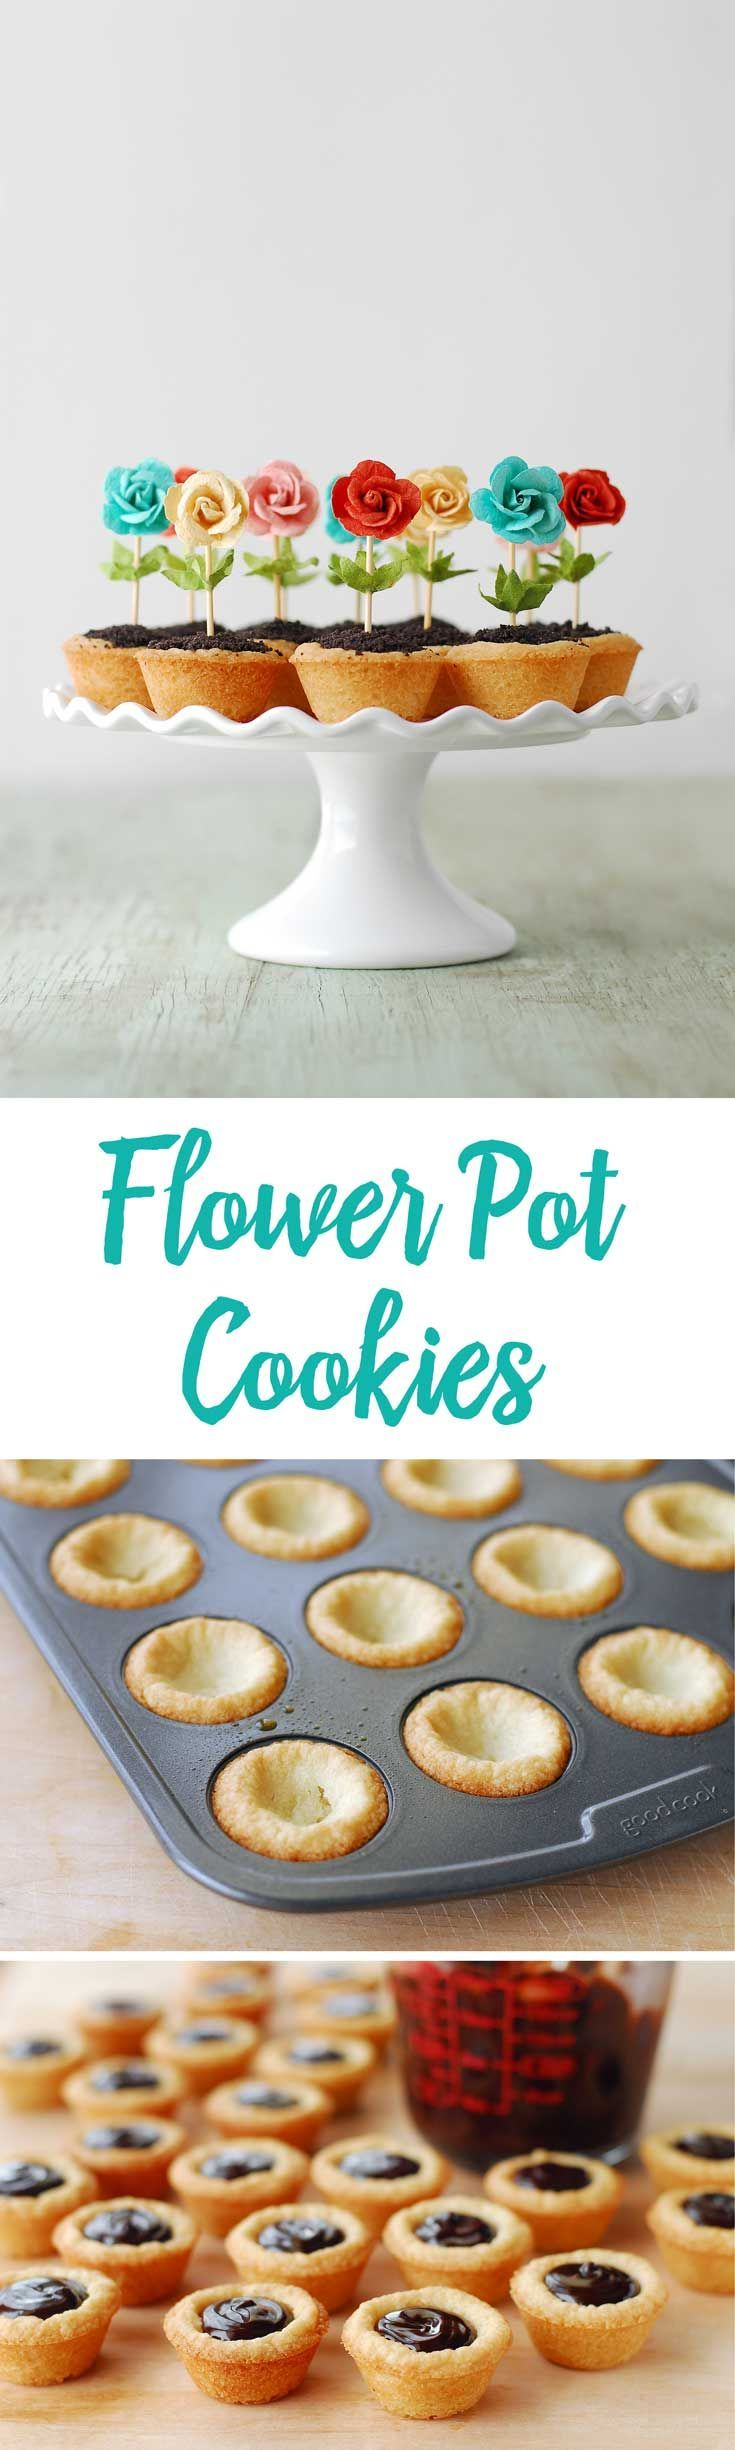 Kate would love these! These Flower Pot Cookies are perfect for spring! The bright colors pop and the easy recipe makes them a fun party idea. The cookies cups are filled with chocolate ganache and cookie crumbs!